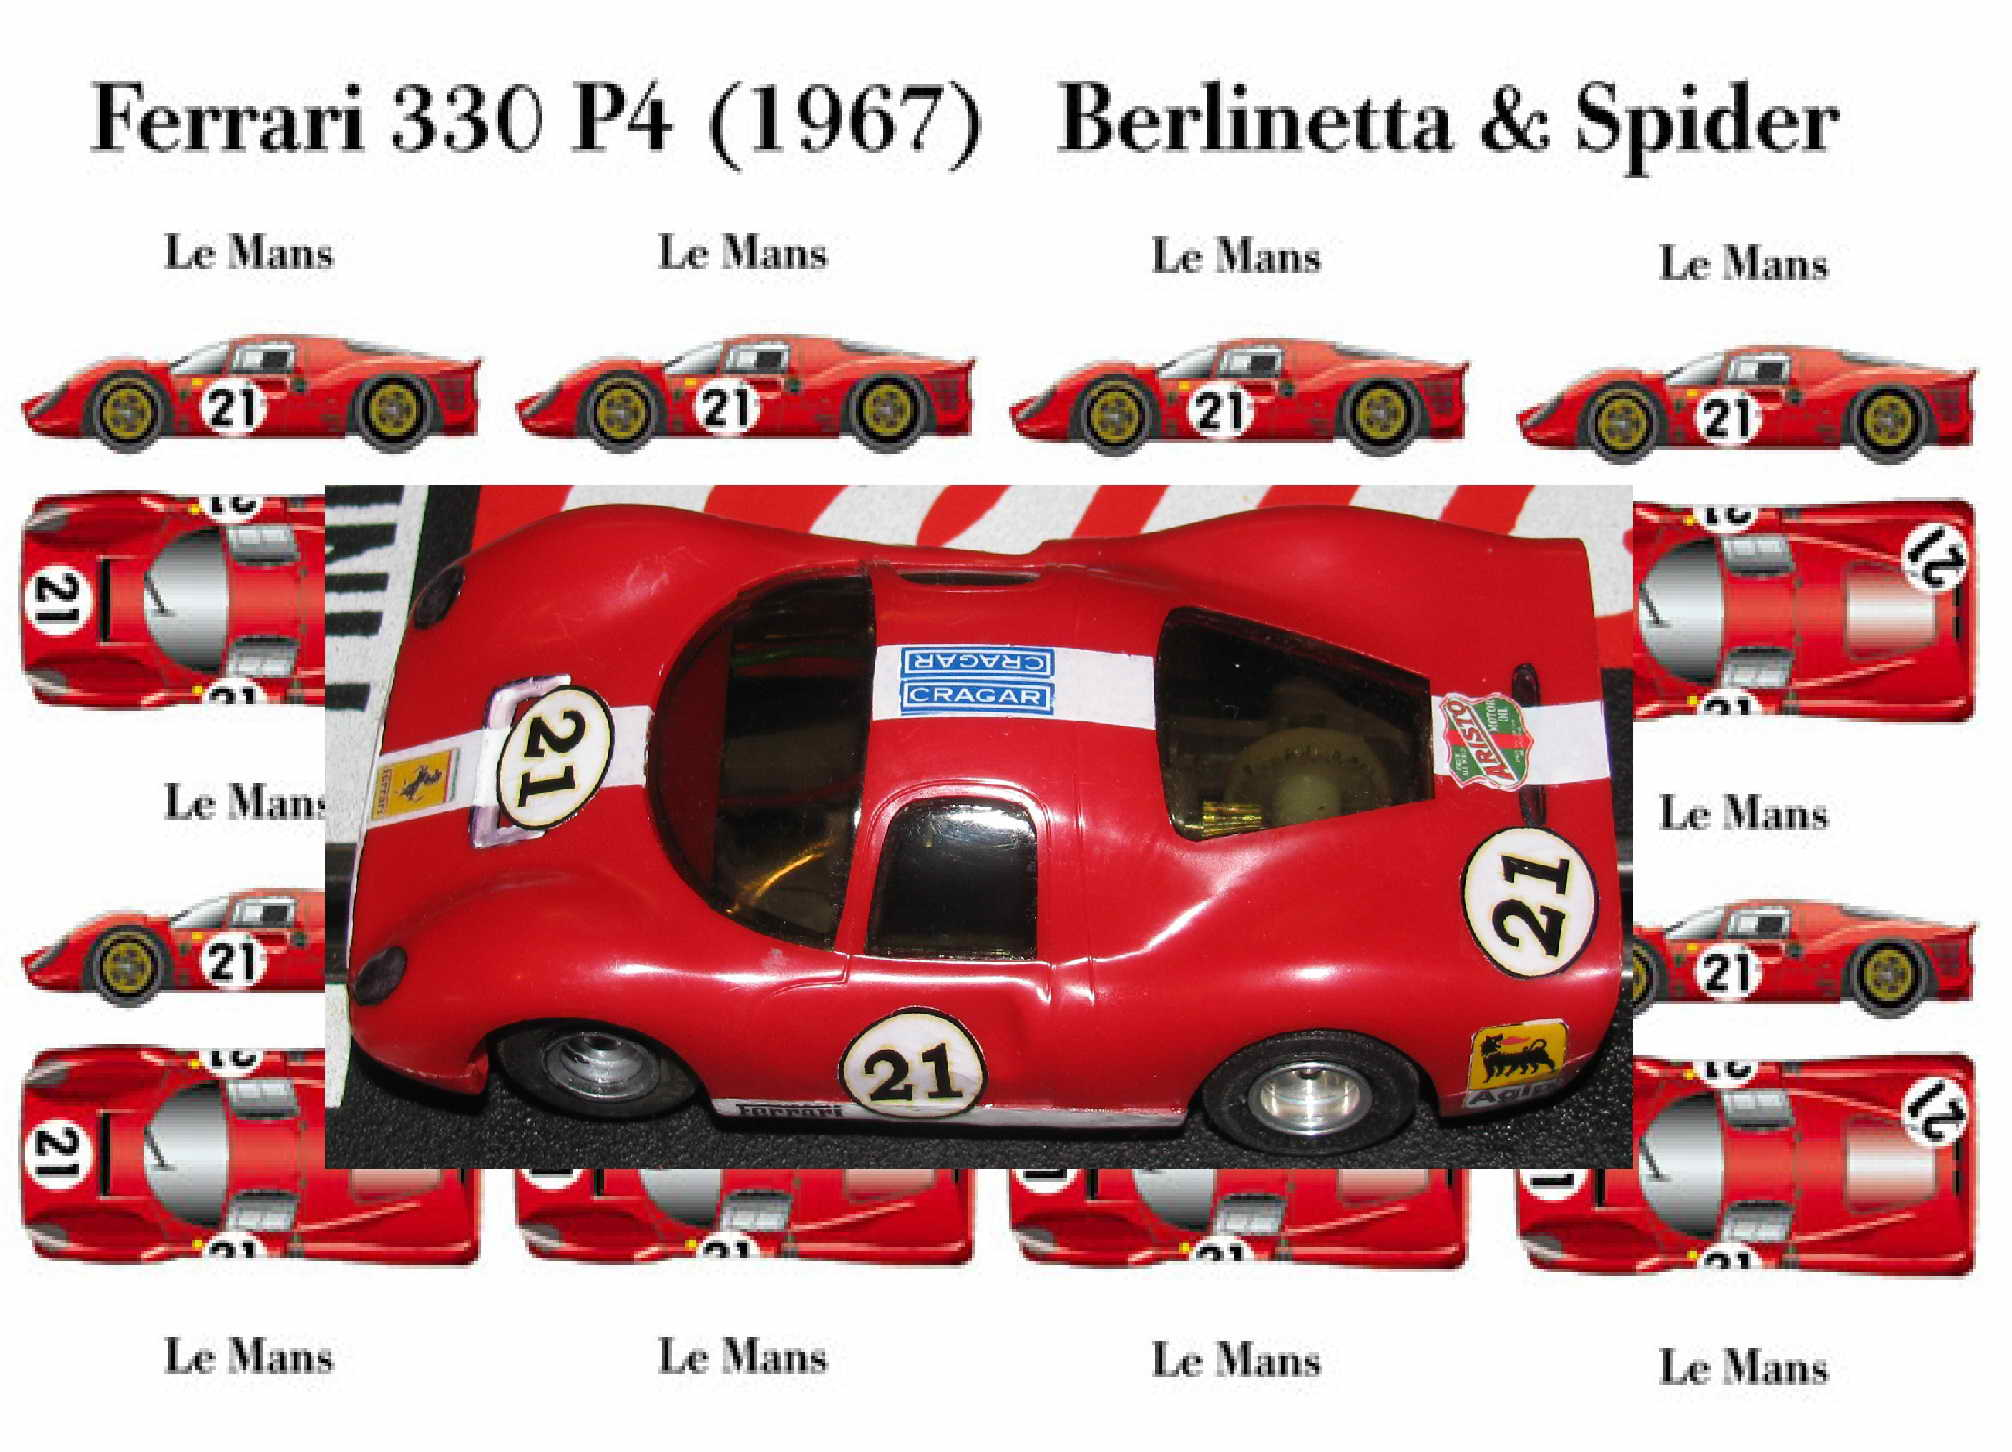 * SOLD * 1967 Ferrari 330 P4 L116 Le Mans Car #21